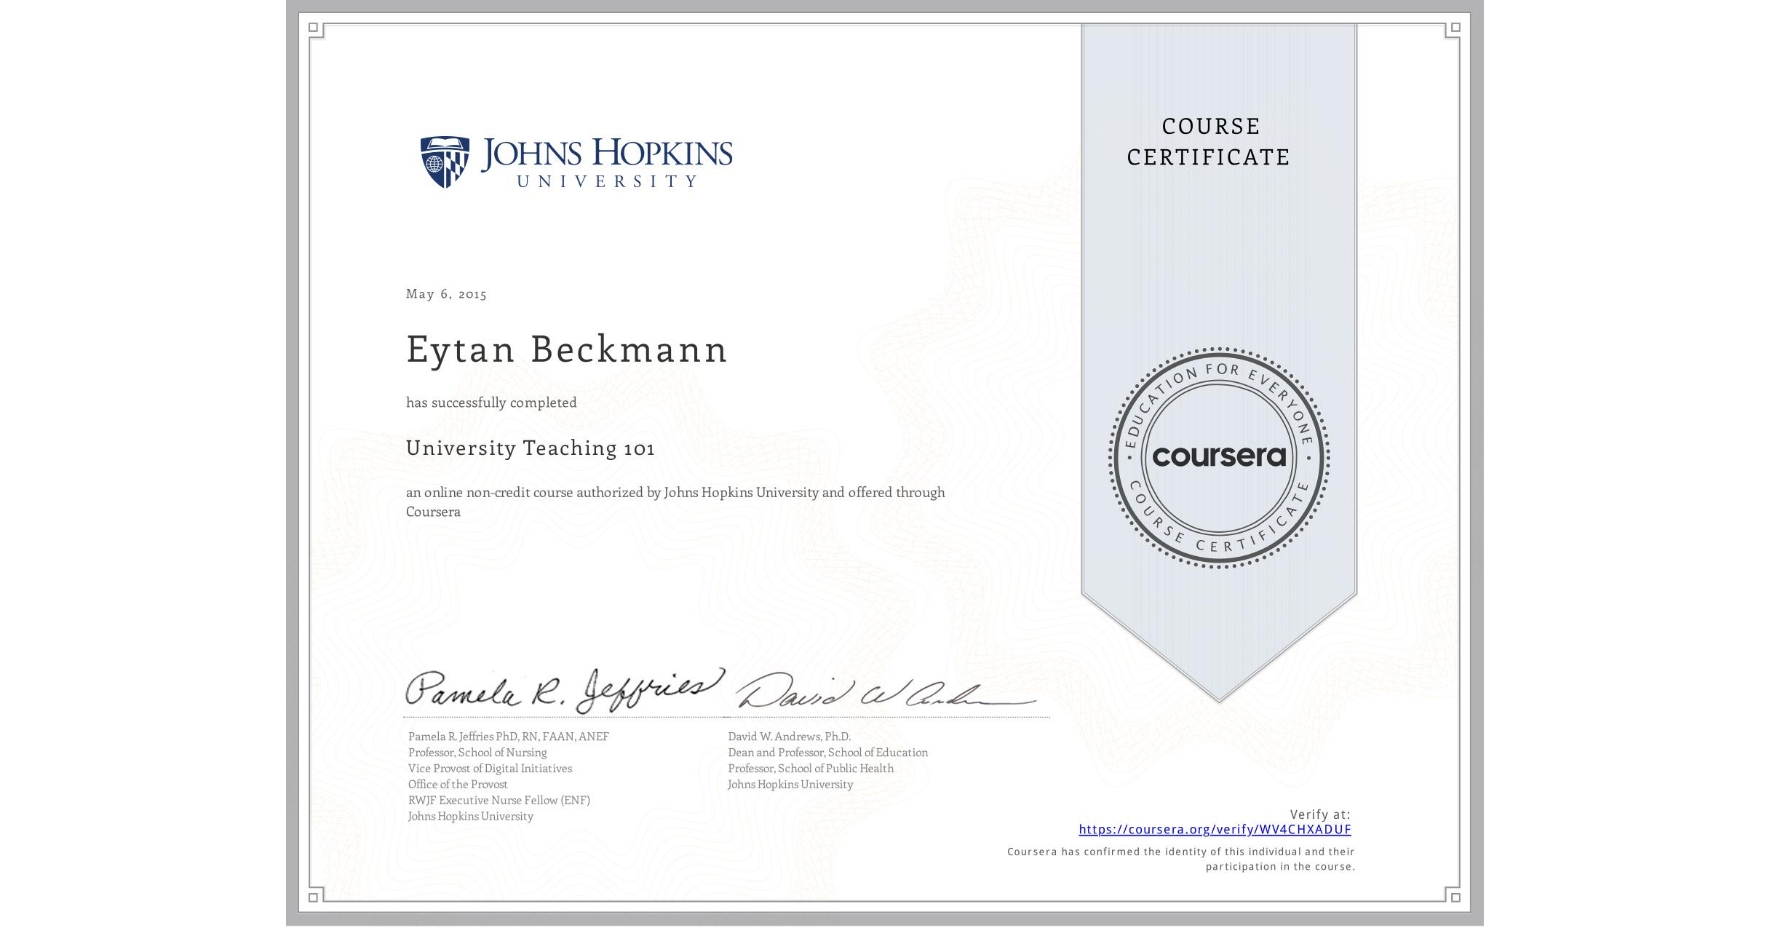 View certificate for Eytan Beckmann, University Teaching 101, an online non-credit course authorized by Johns Hopkins University and offered through Coursera